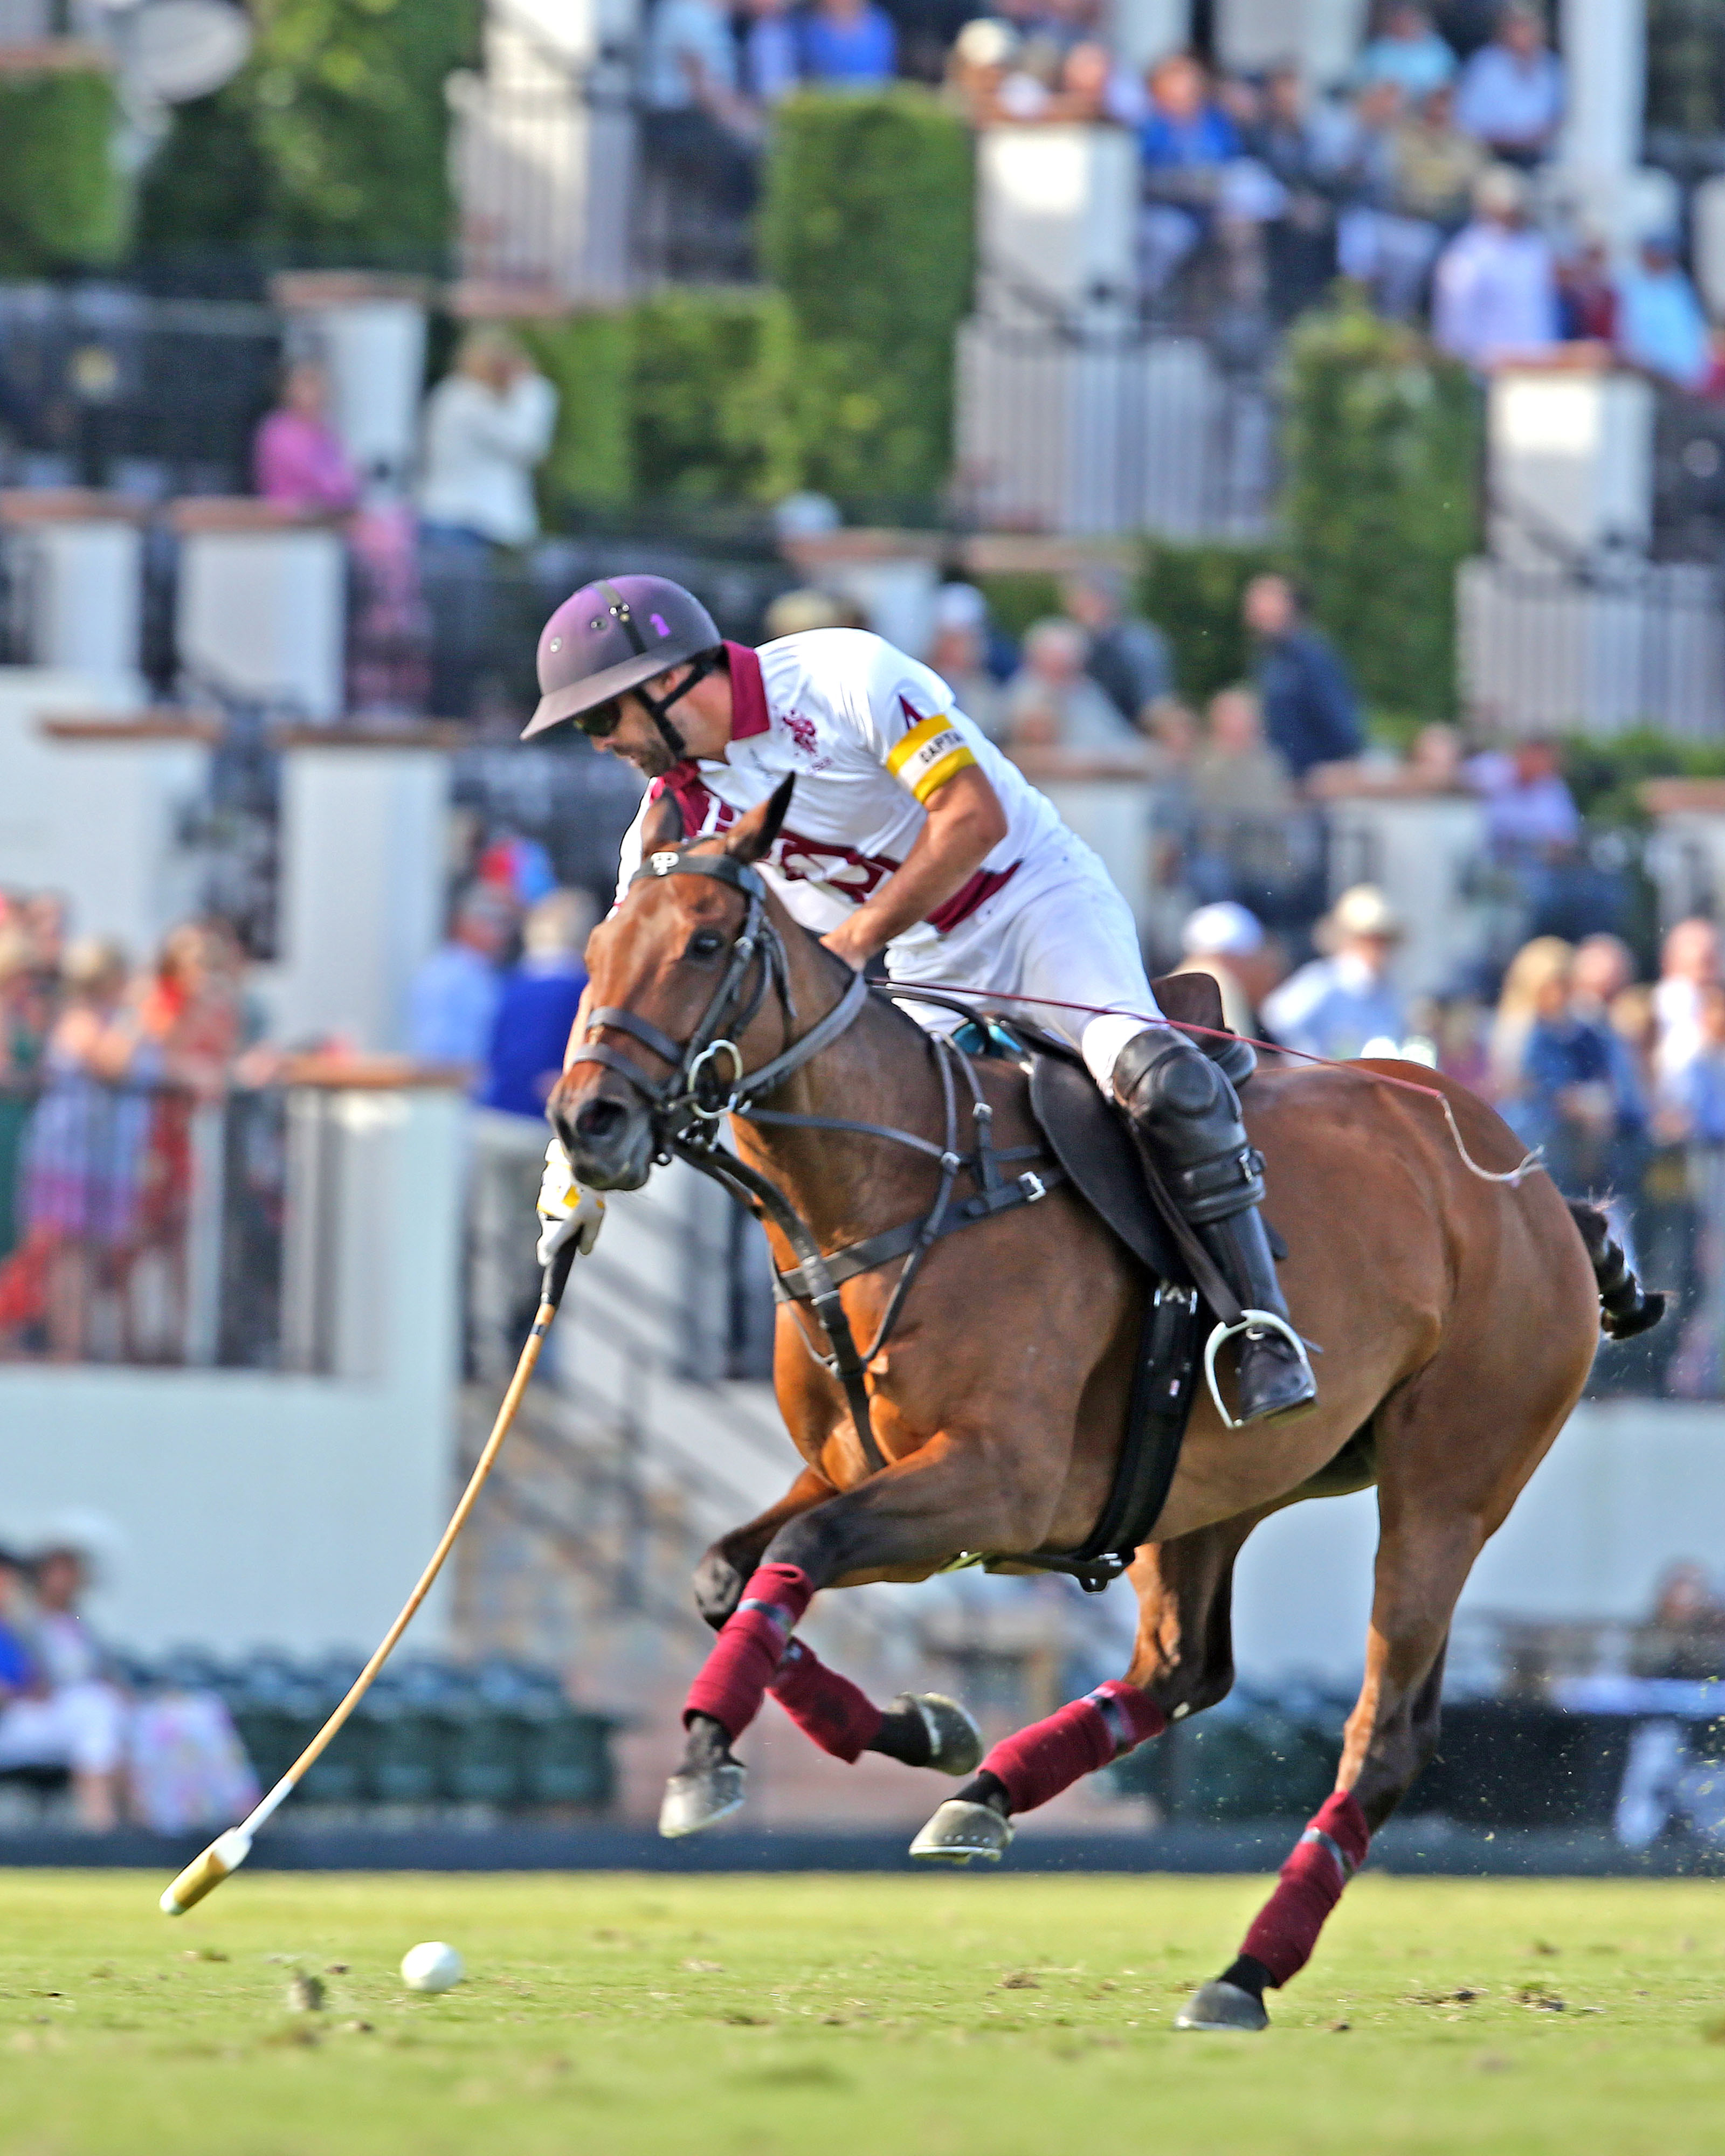 Pilot enters the semifinals of the 2020 USPA Gold Cup® as the only undefeated team. ©Alex Pacheco